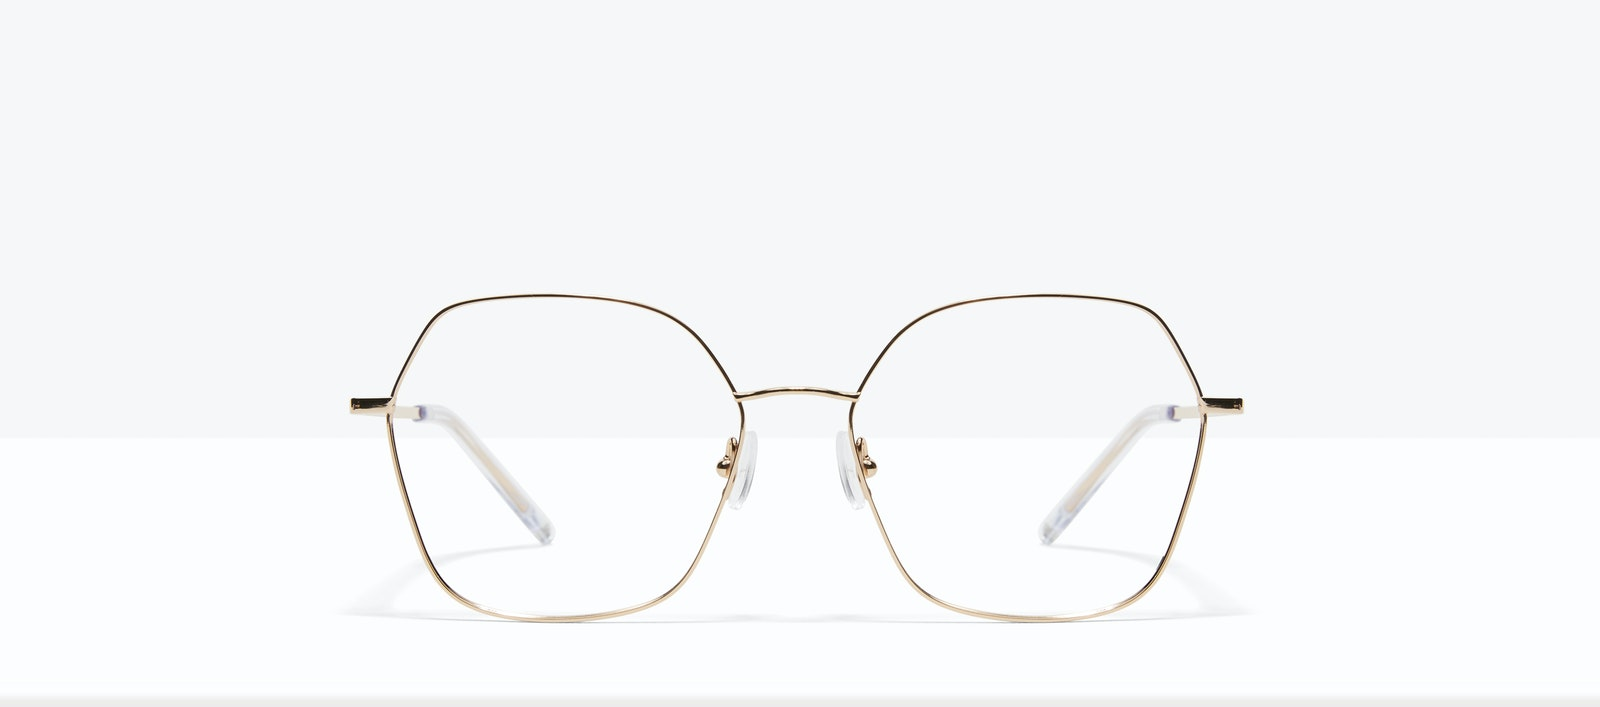 Affordable Fashion Glasses Square Eyeglasses Women Mersey Gold Front